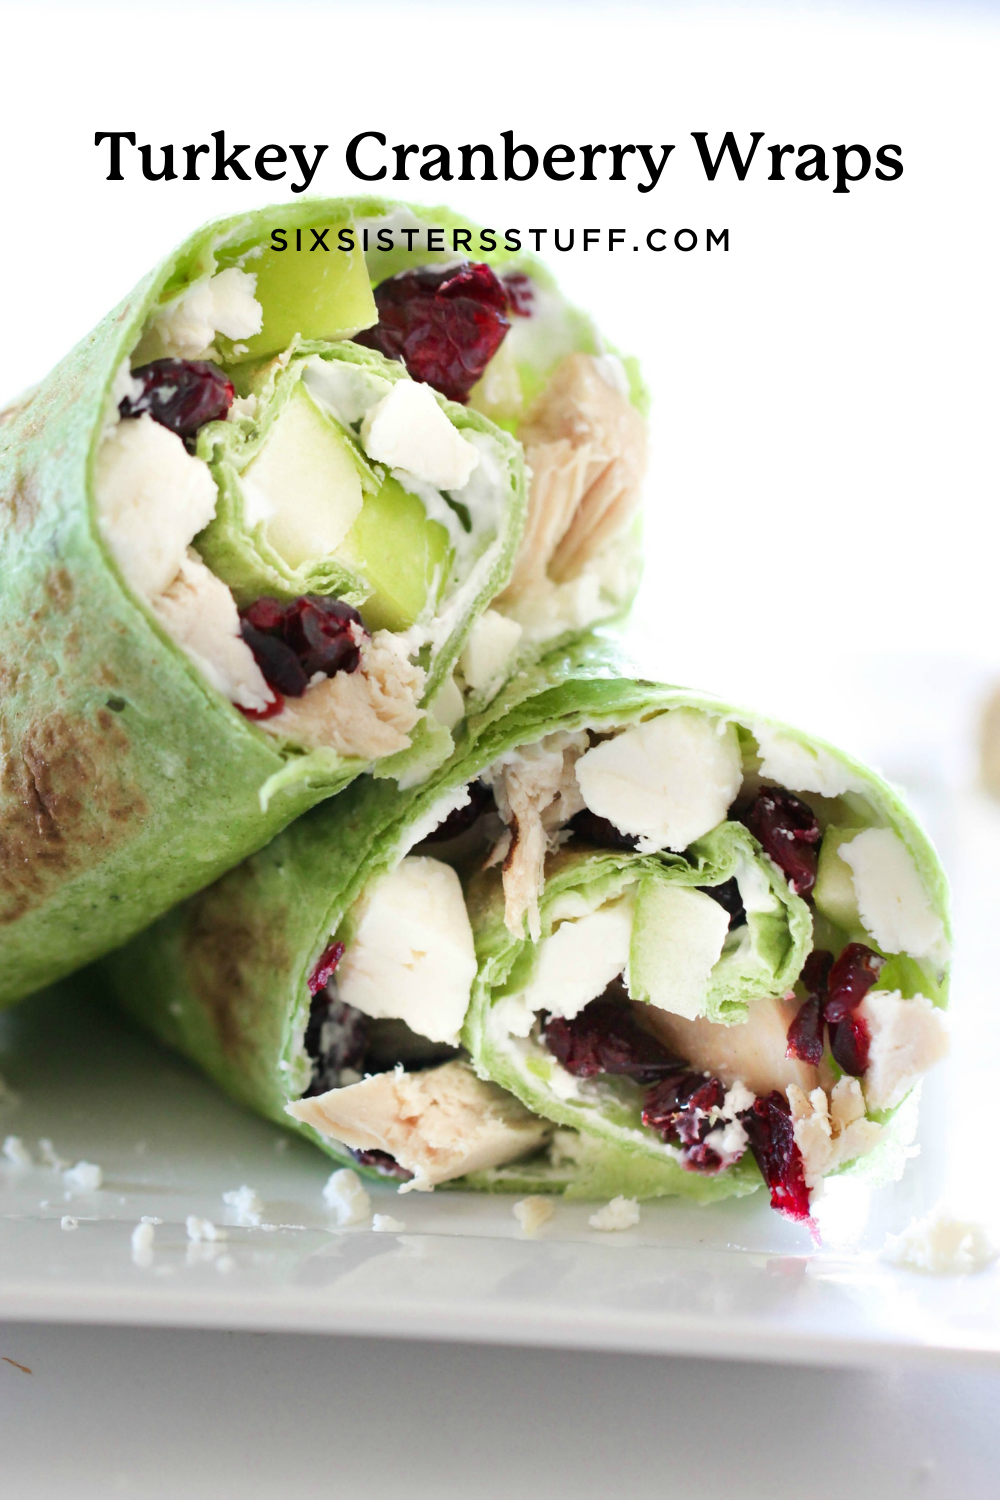 turkey, craisins, apples, and feta cheese wrapped up in a tortilla